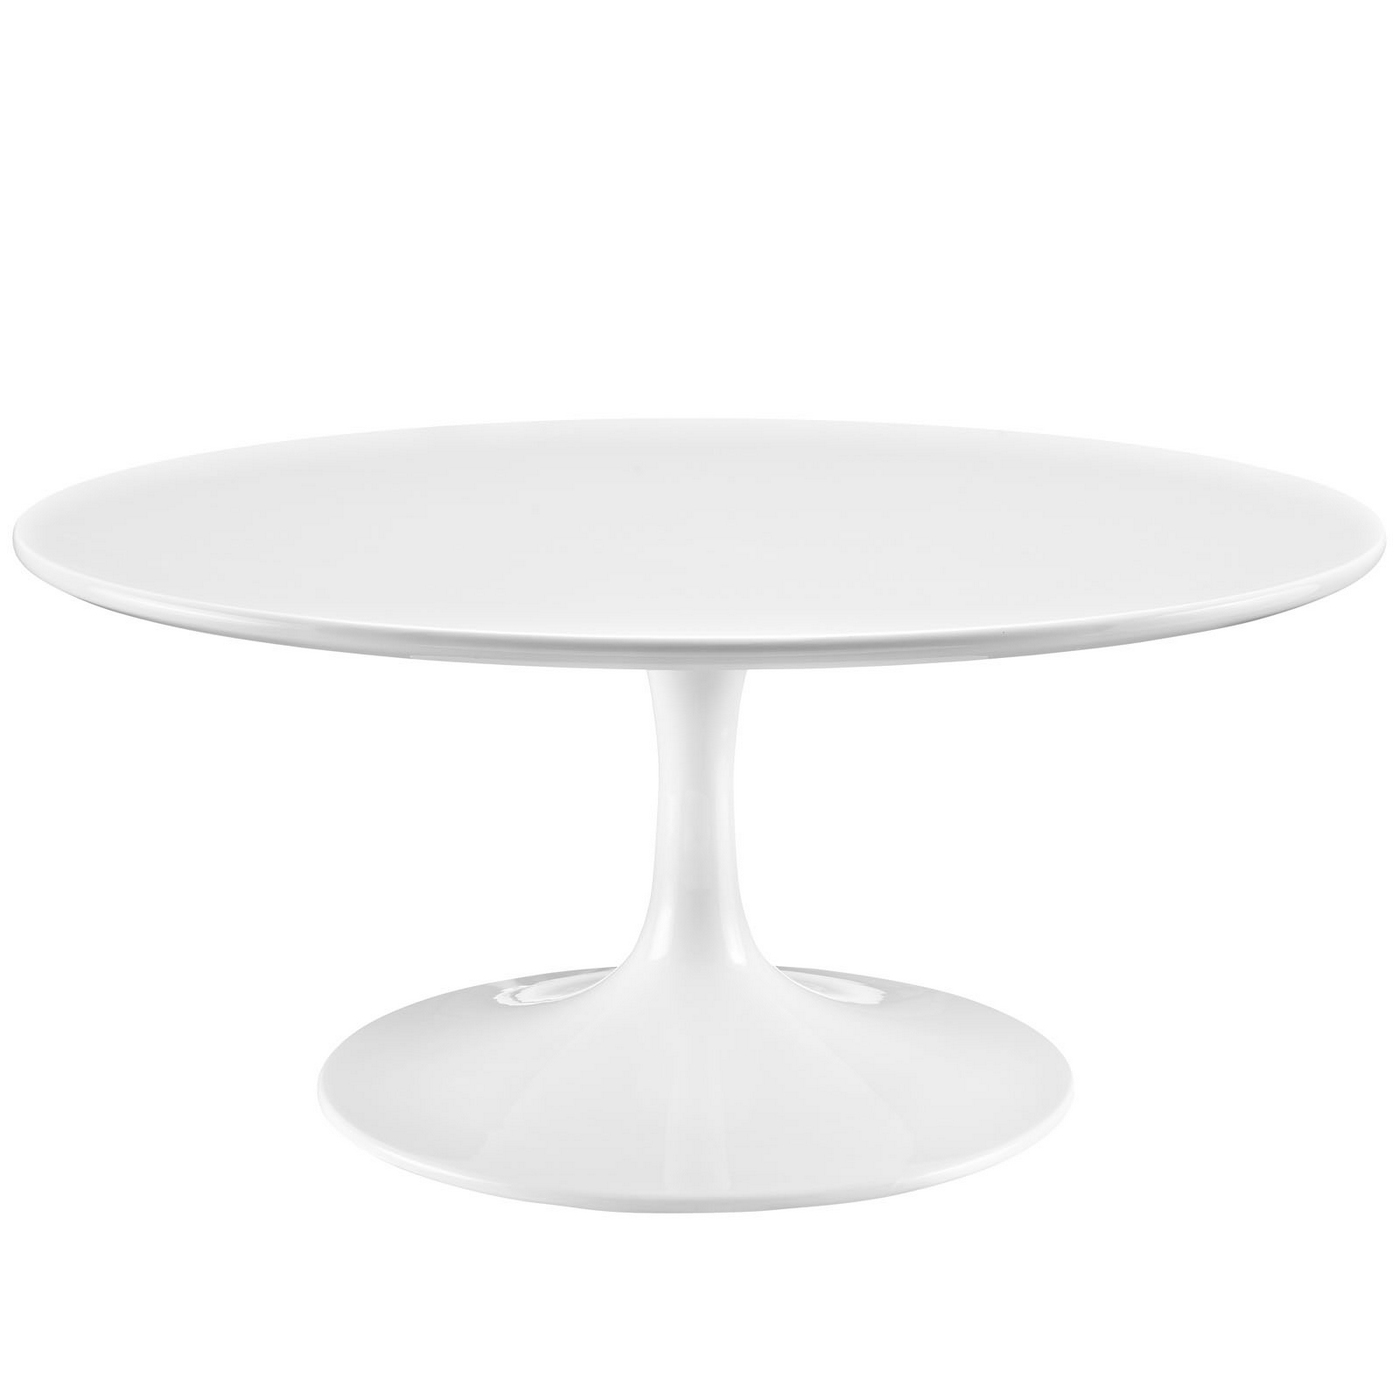 Lippa Modern 36 Round Pedestal Coffee Table With Lacquered Finish White